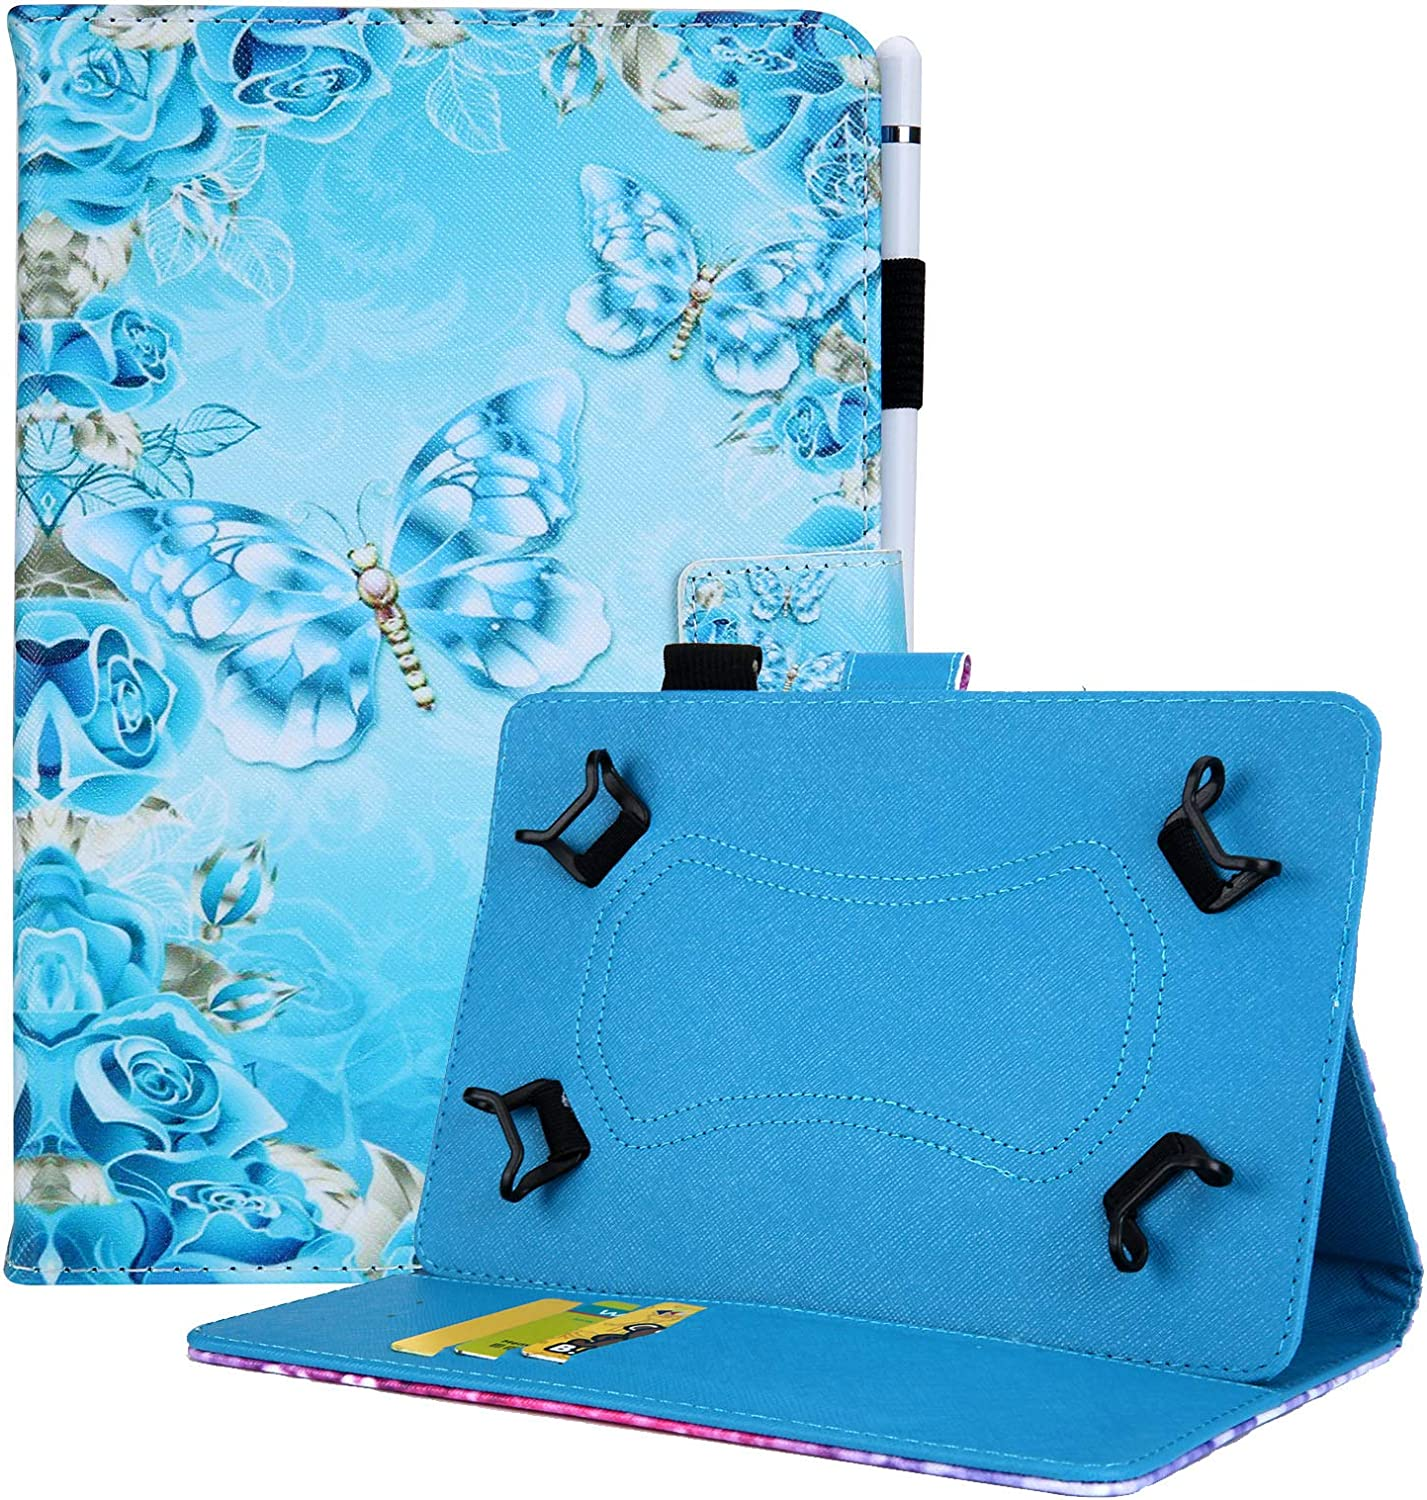 Dteck 9.5-10.5 Inch Universal Case, Nice Cute Flip Stand Case Protective Pocket Cover for Apple/Samsung/Kindle/Huawei/Lenovo/Android/Dragon Touch 9.7 9.6 10.1 10.5 Inch Tablet-Blue Diamond Butterfly